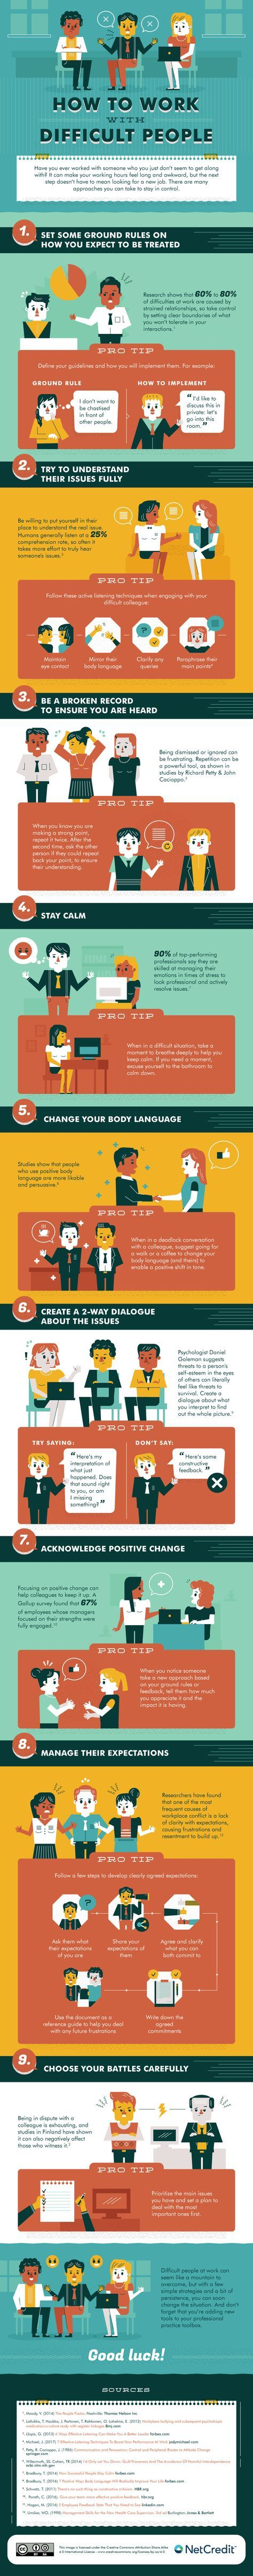 #workplace #infographic How to Fix A Toxic Work Atmosphere and Save Your Career